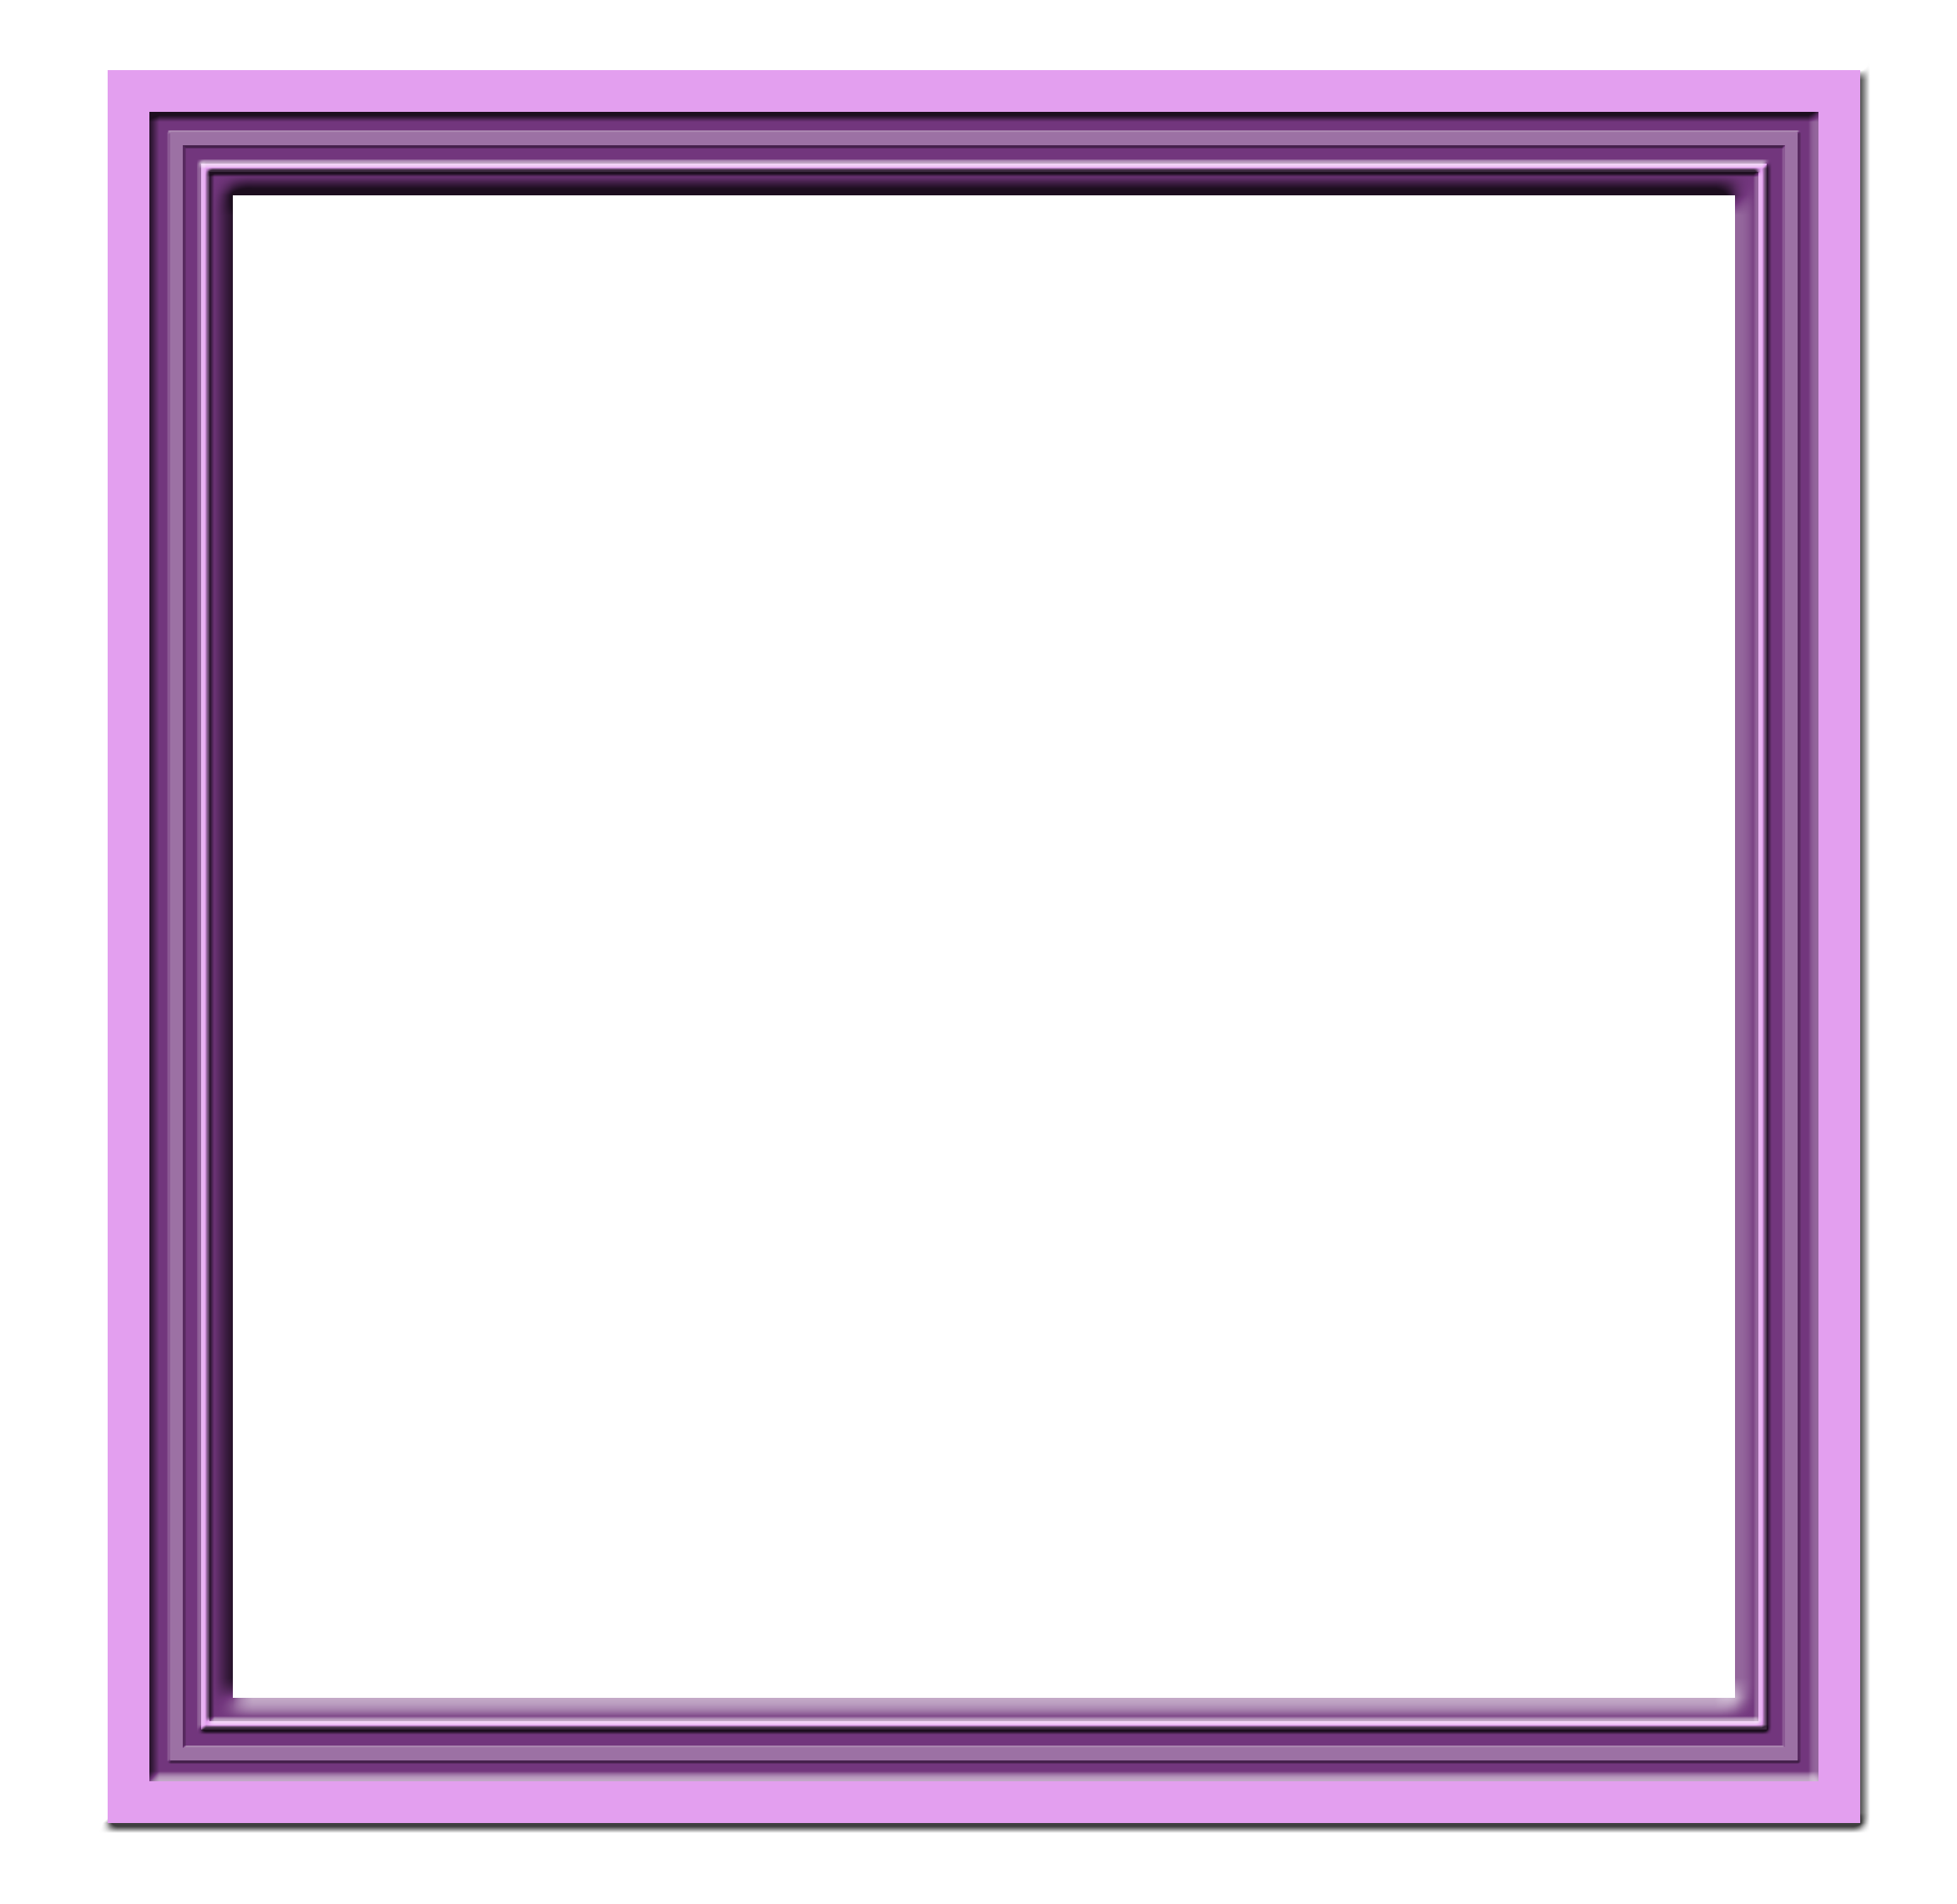 Free Photoshop Frames and Borders Templates